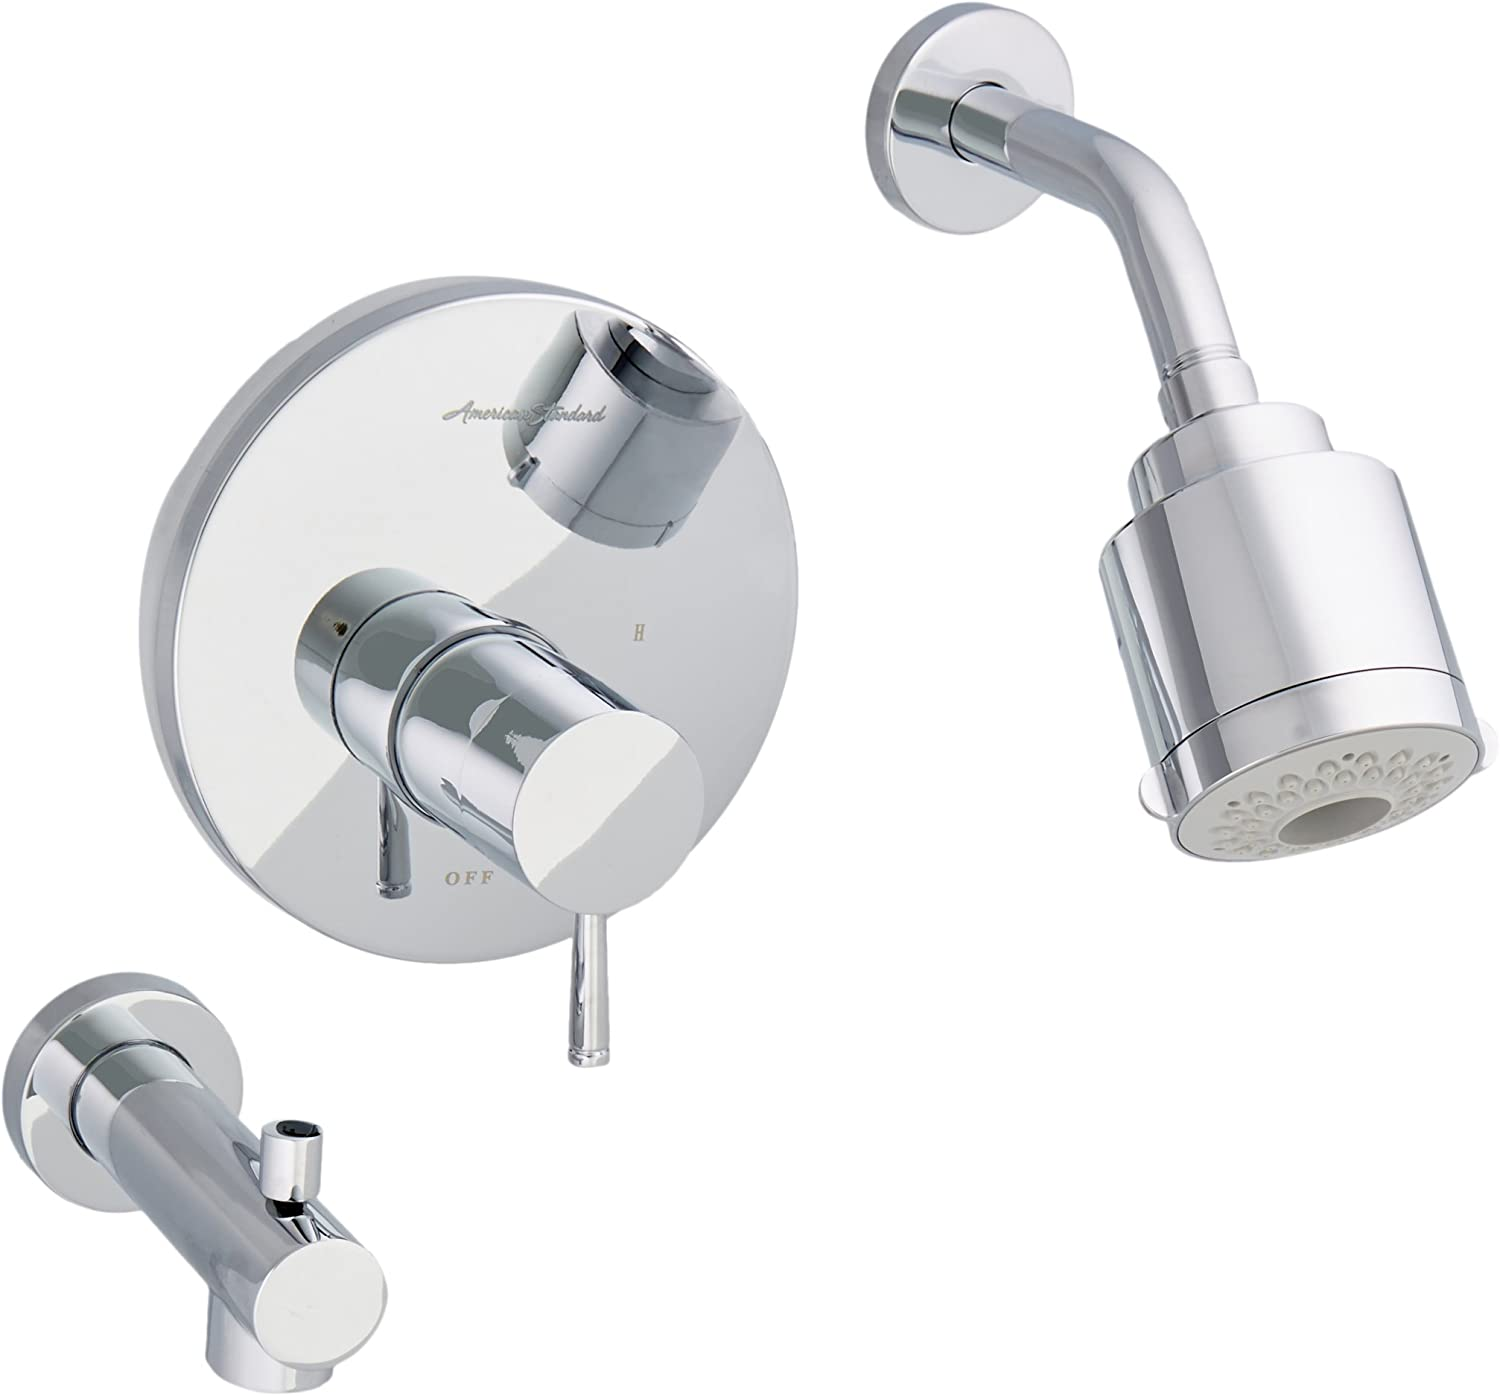 American Standard T064508.002 Serin Pressure Balance Bath and Shower Trim with Flowise 3-Function Showerhead, Polished Chrome